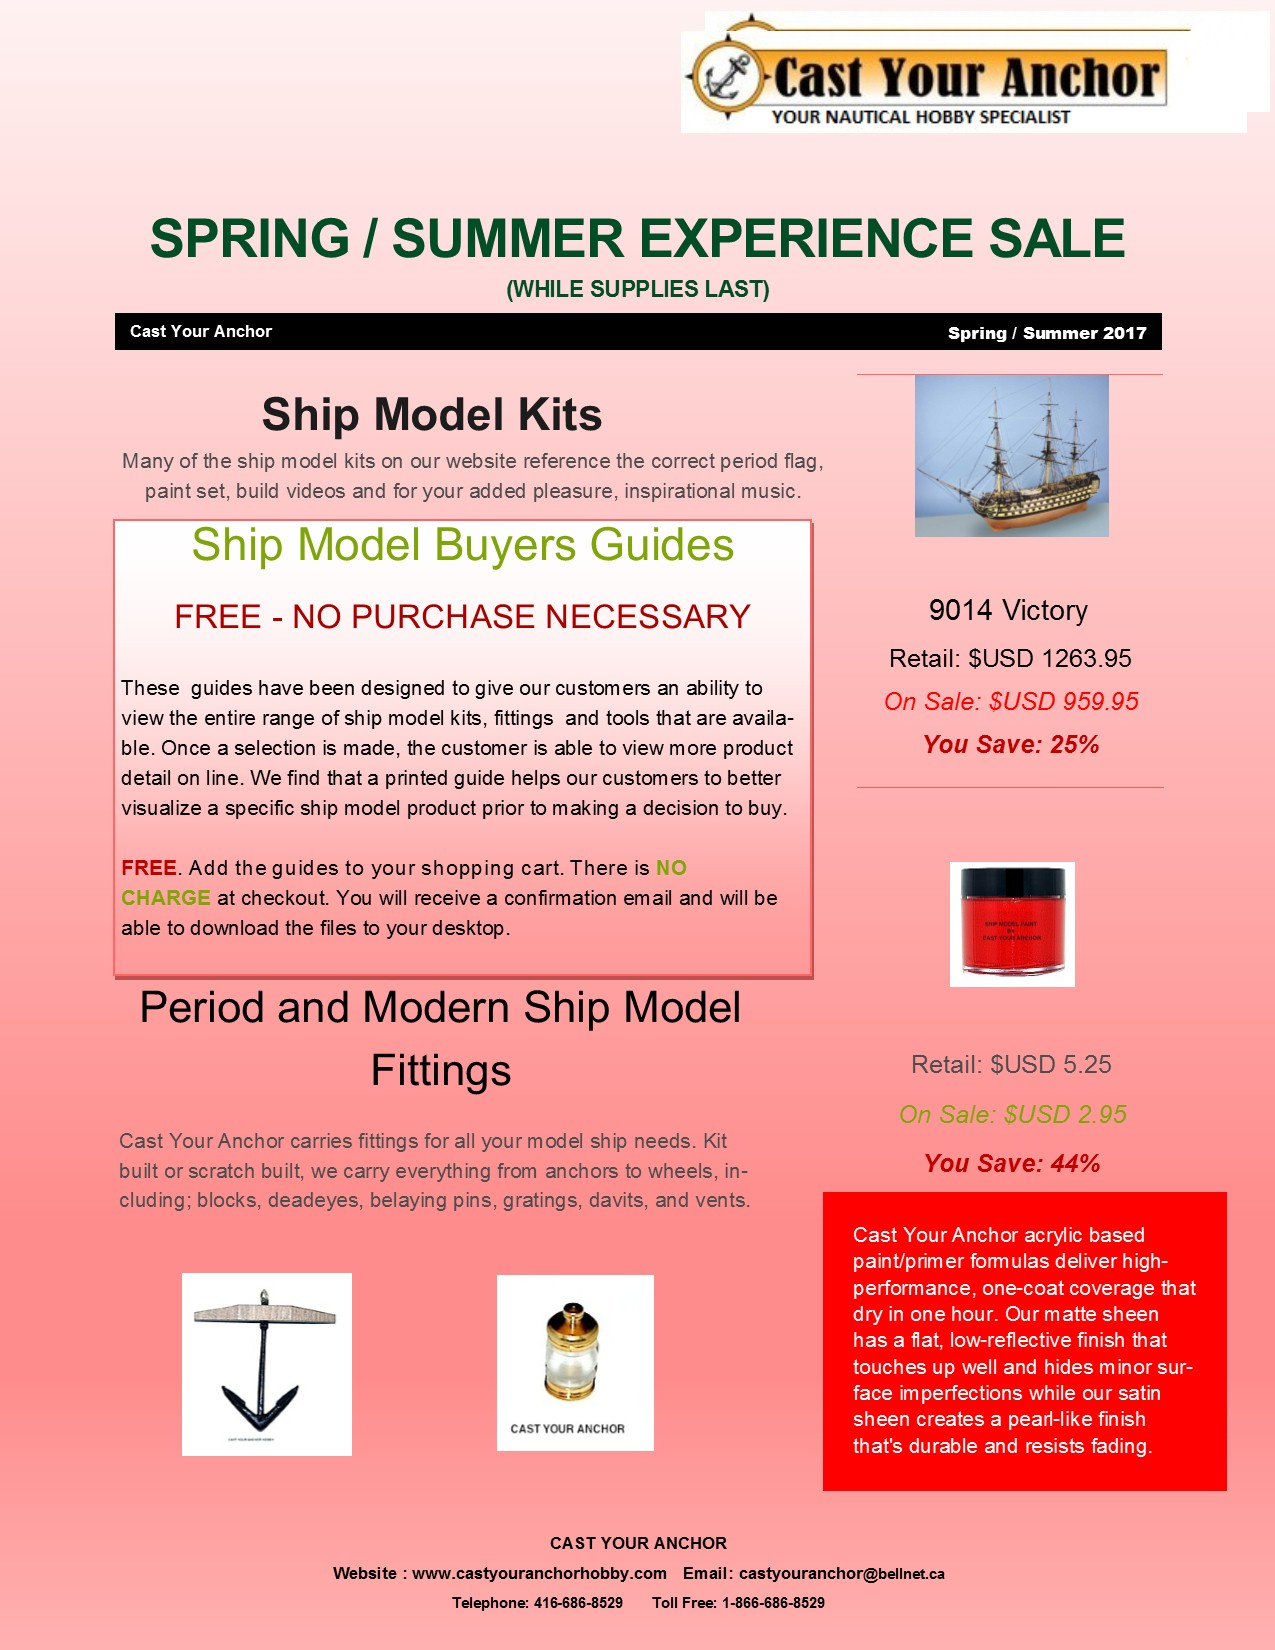 52015 - Spring / Summer Experience Sales Flyer